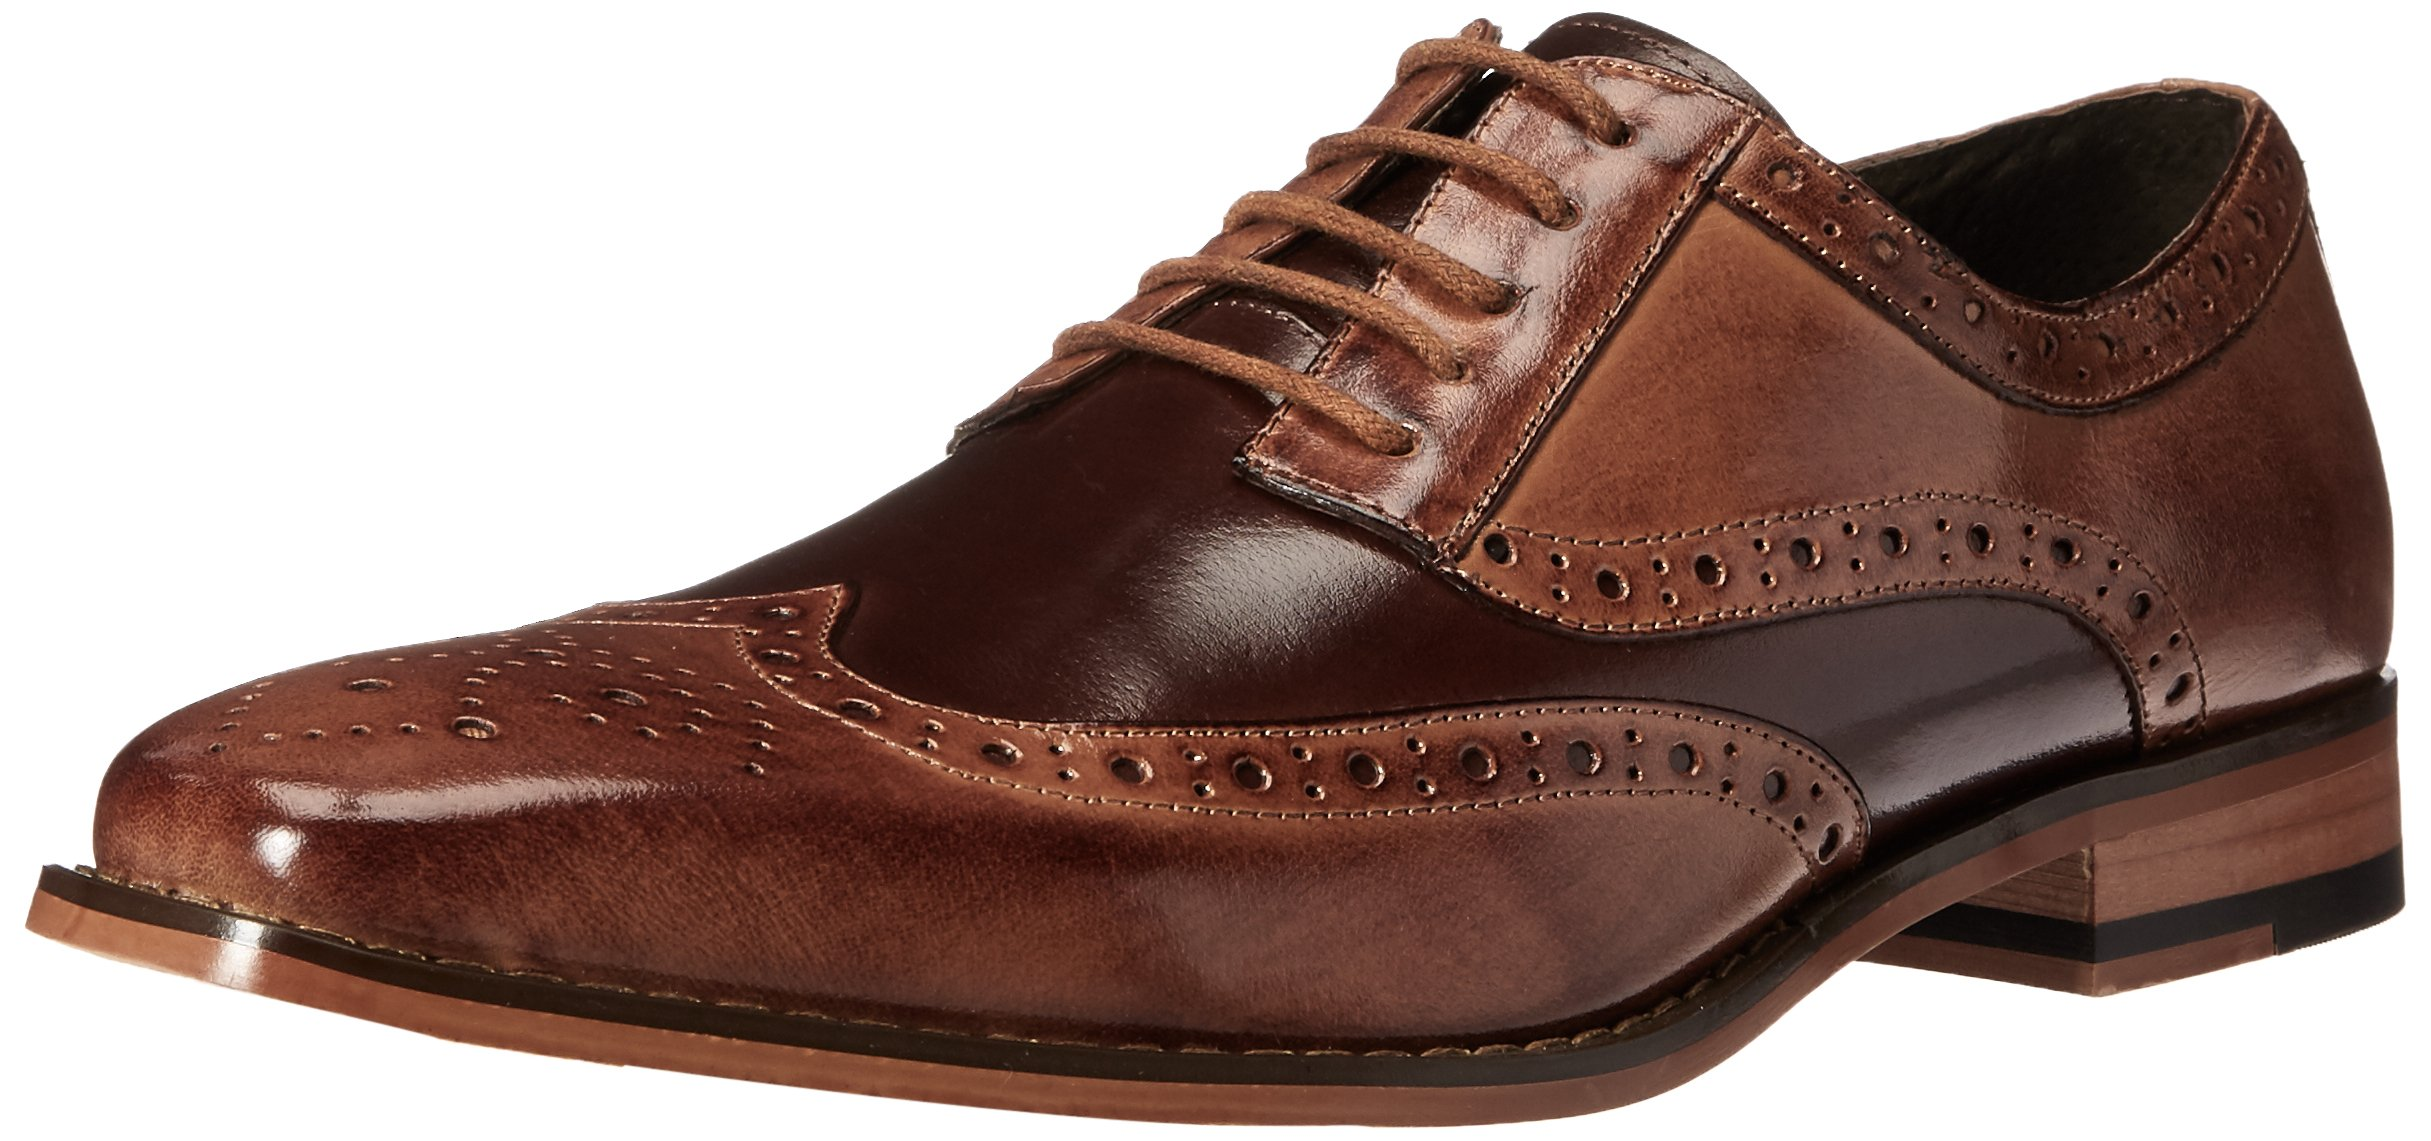 Stacy Adams Men's Tinsley-Wingtip Oxford, Tan/Brown, 9.5 M US